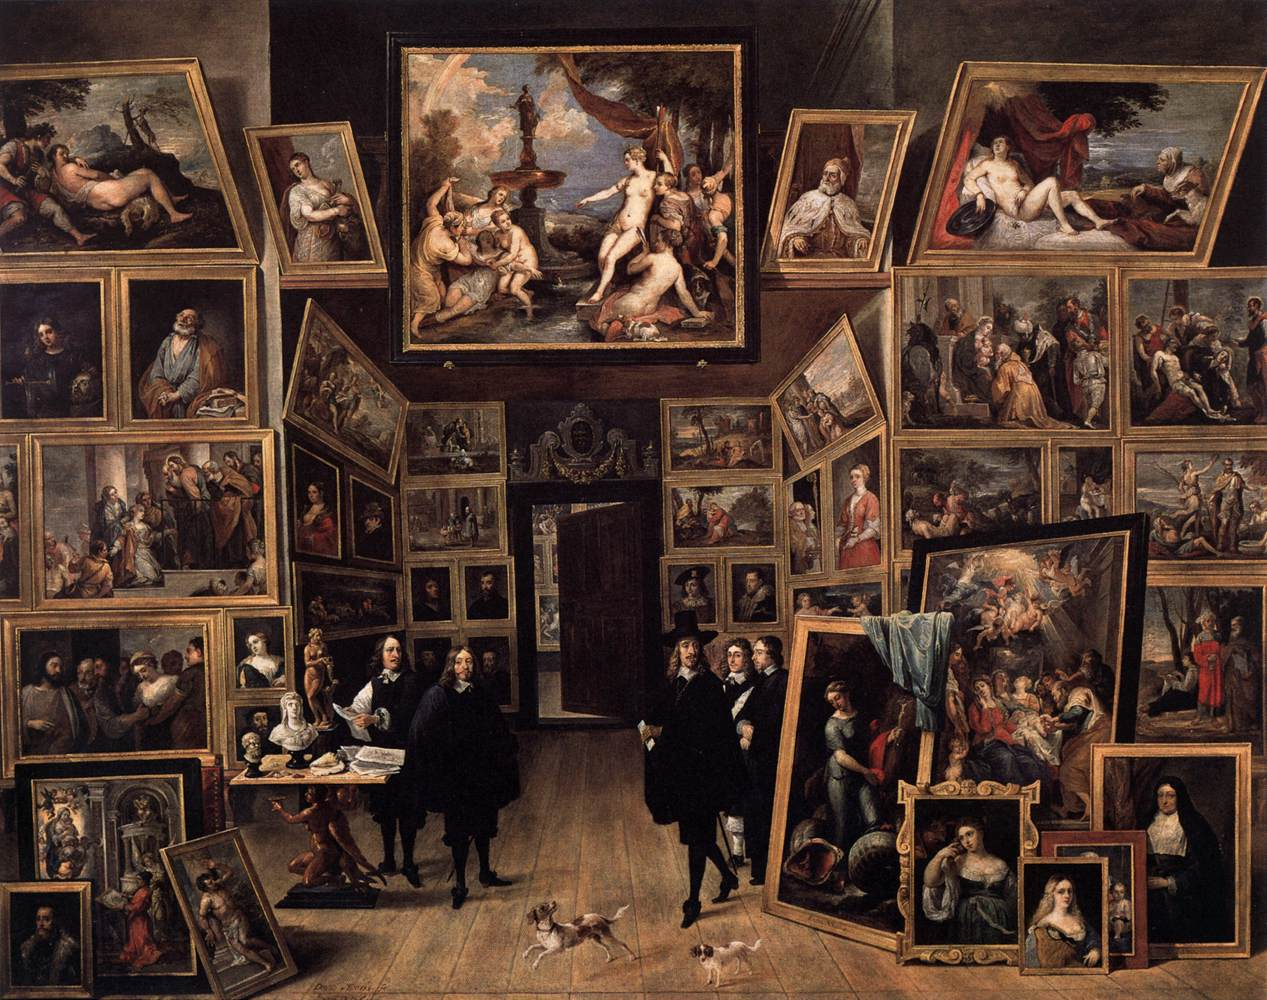 http://uploads5.wikipaintings.org/images/david-teniers-the-younger/the-archduke-leopold-wilhelm-in-his-picture-gallery-in-brussels.jpg